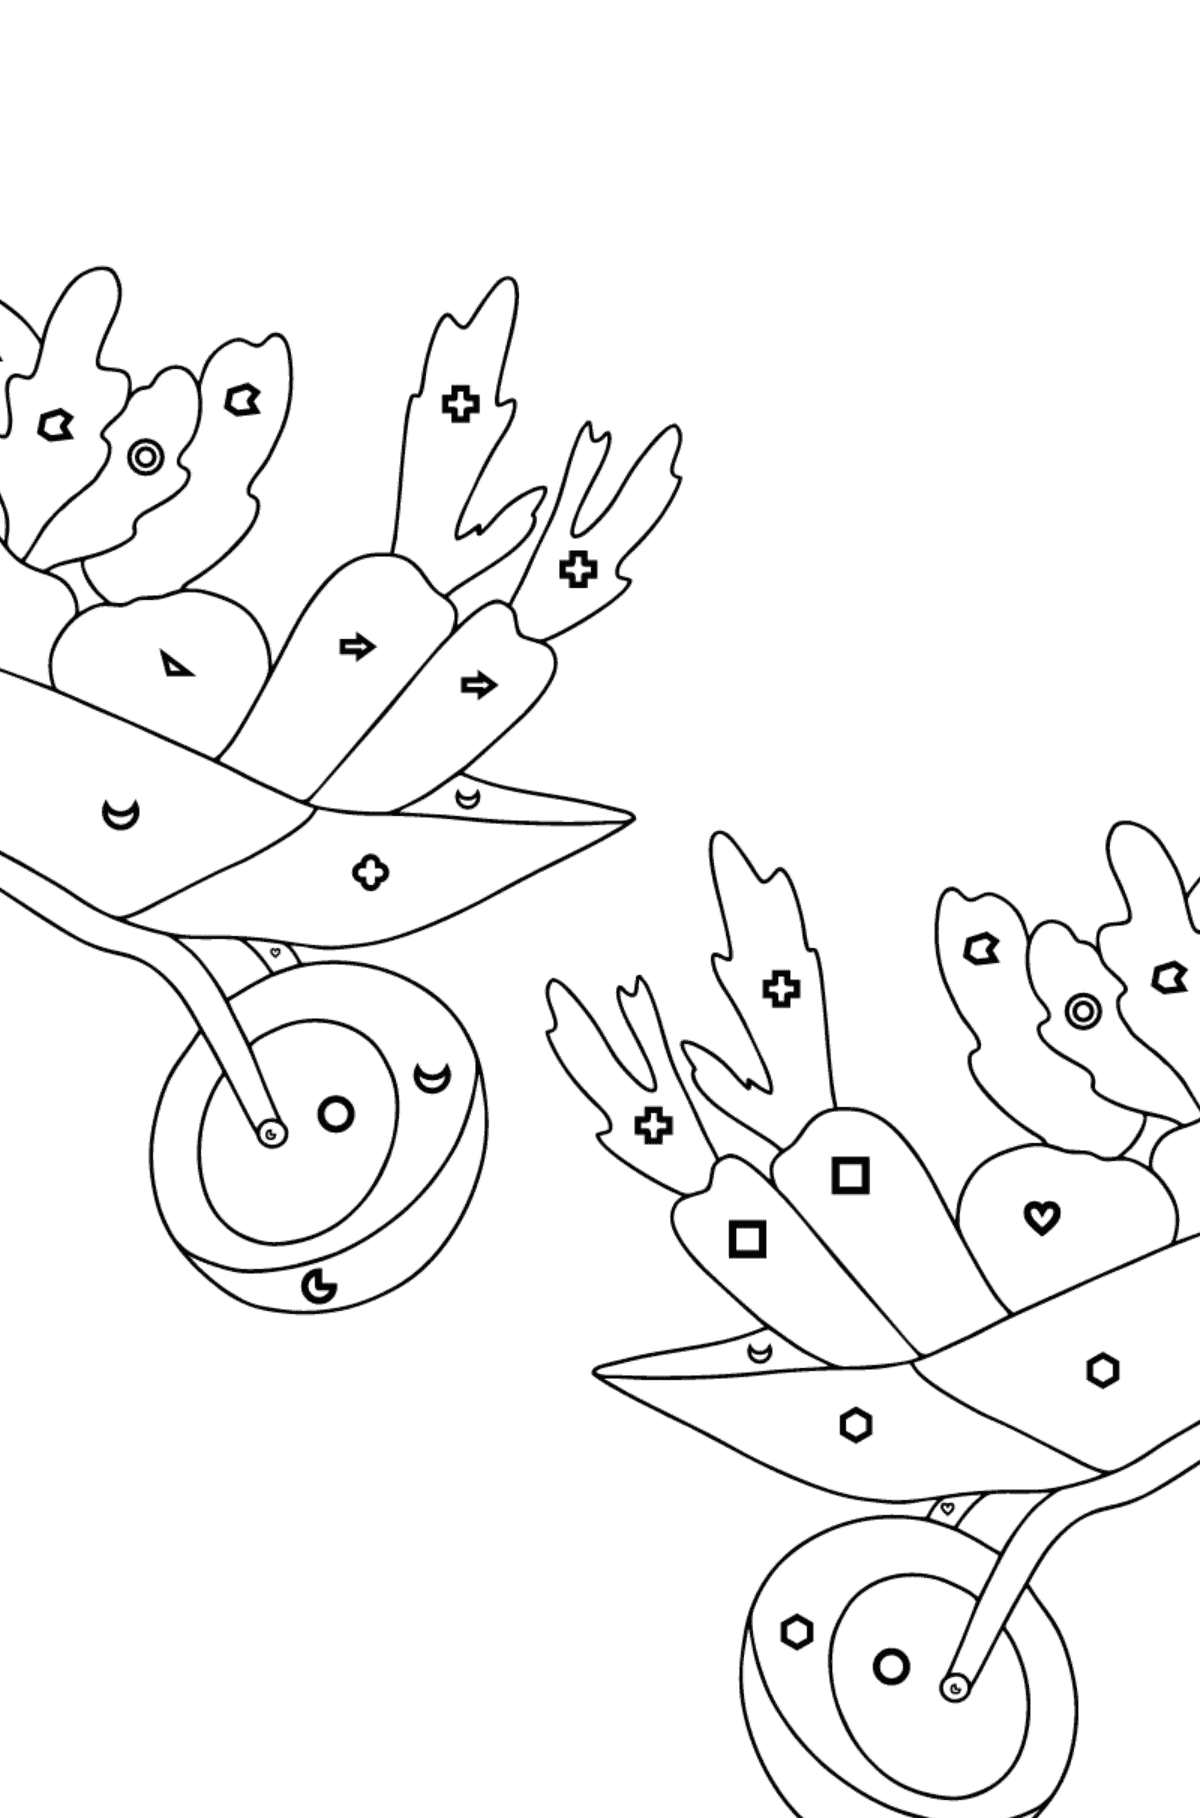 Coloring Page - Hippos in a Garden with Carts for Kids  - Color by Geometric Shapes